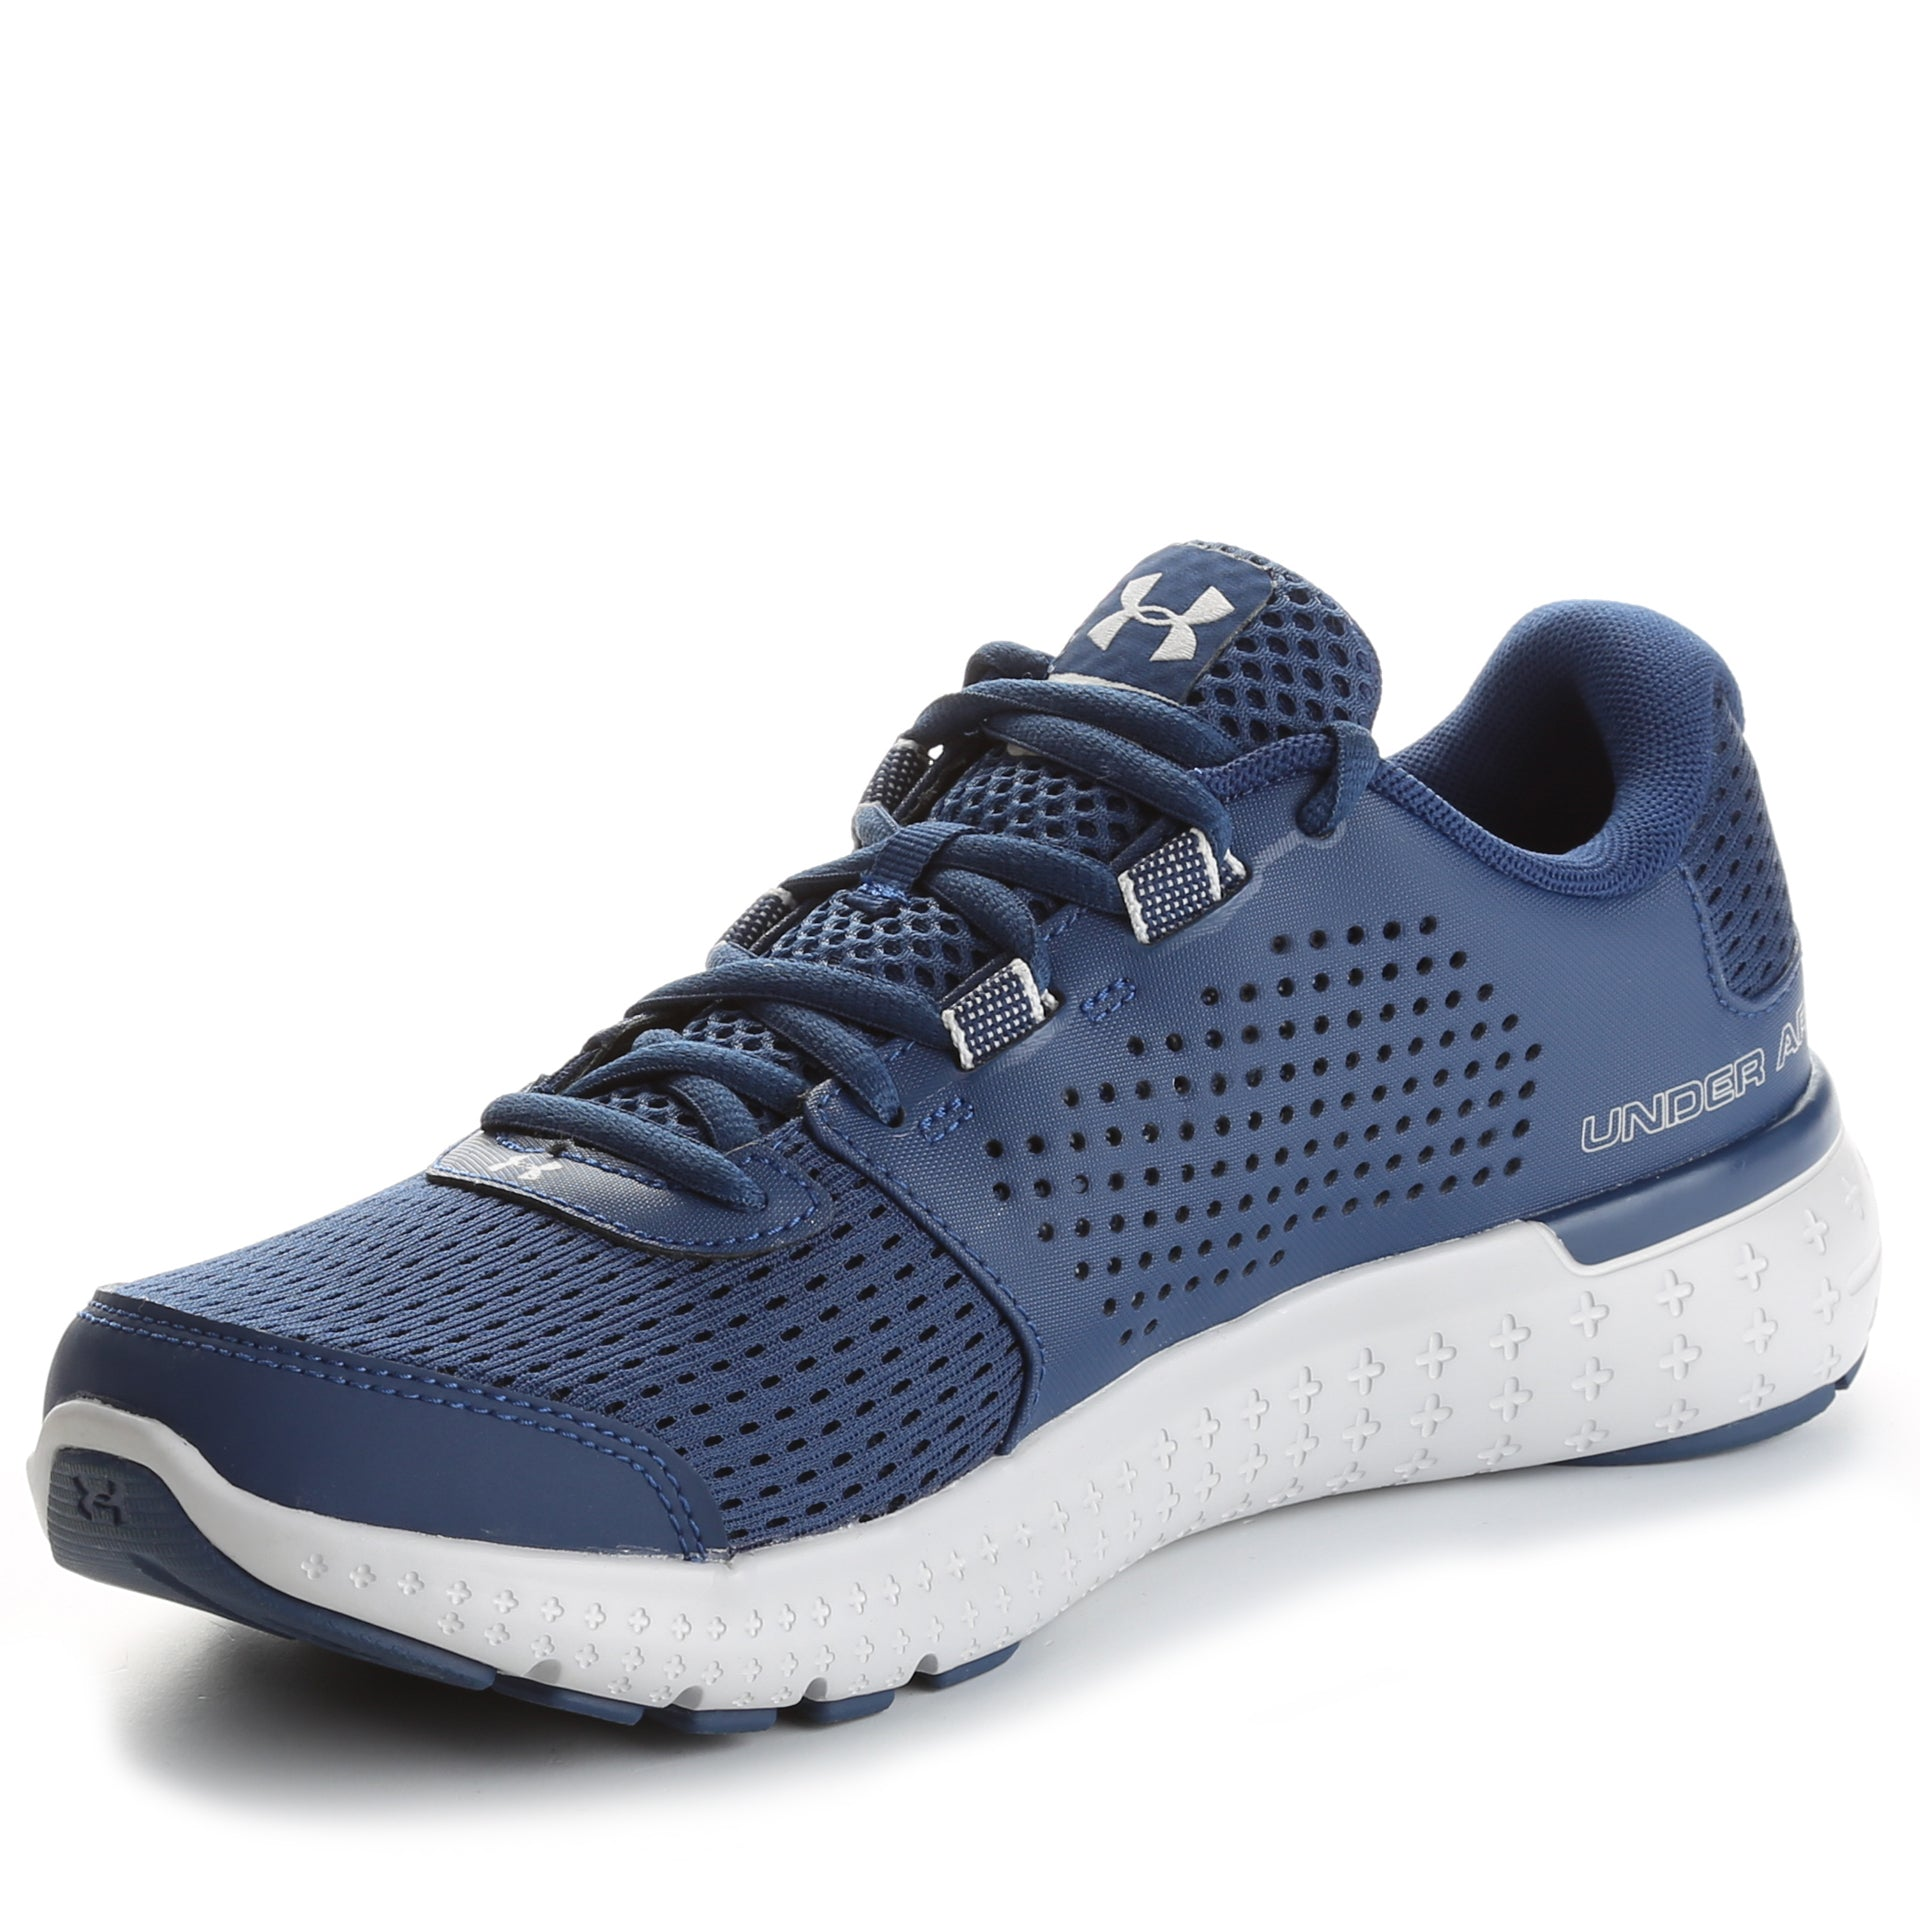 Under Armour Micro G Fuel Running Shoes- Blackout Navy Glacier  Grey Metallic Silver c38161aa1